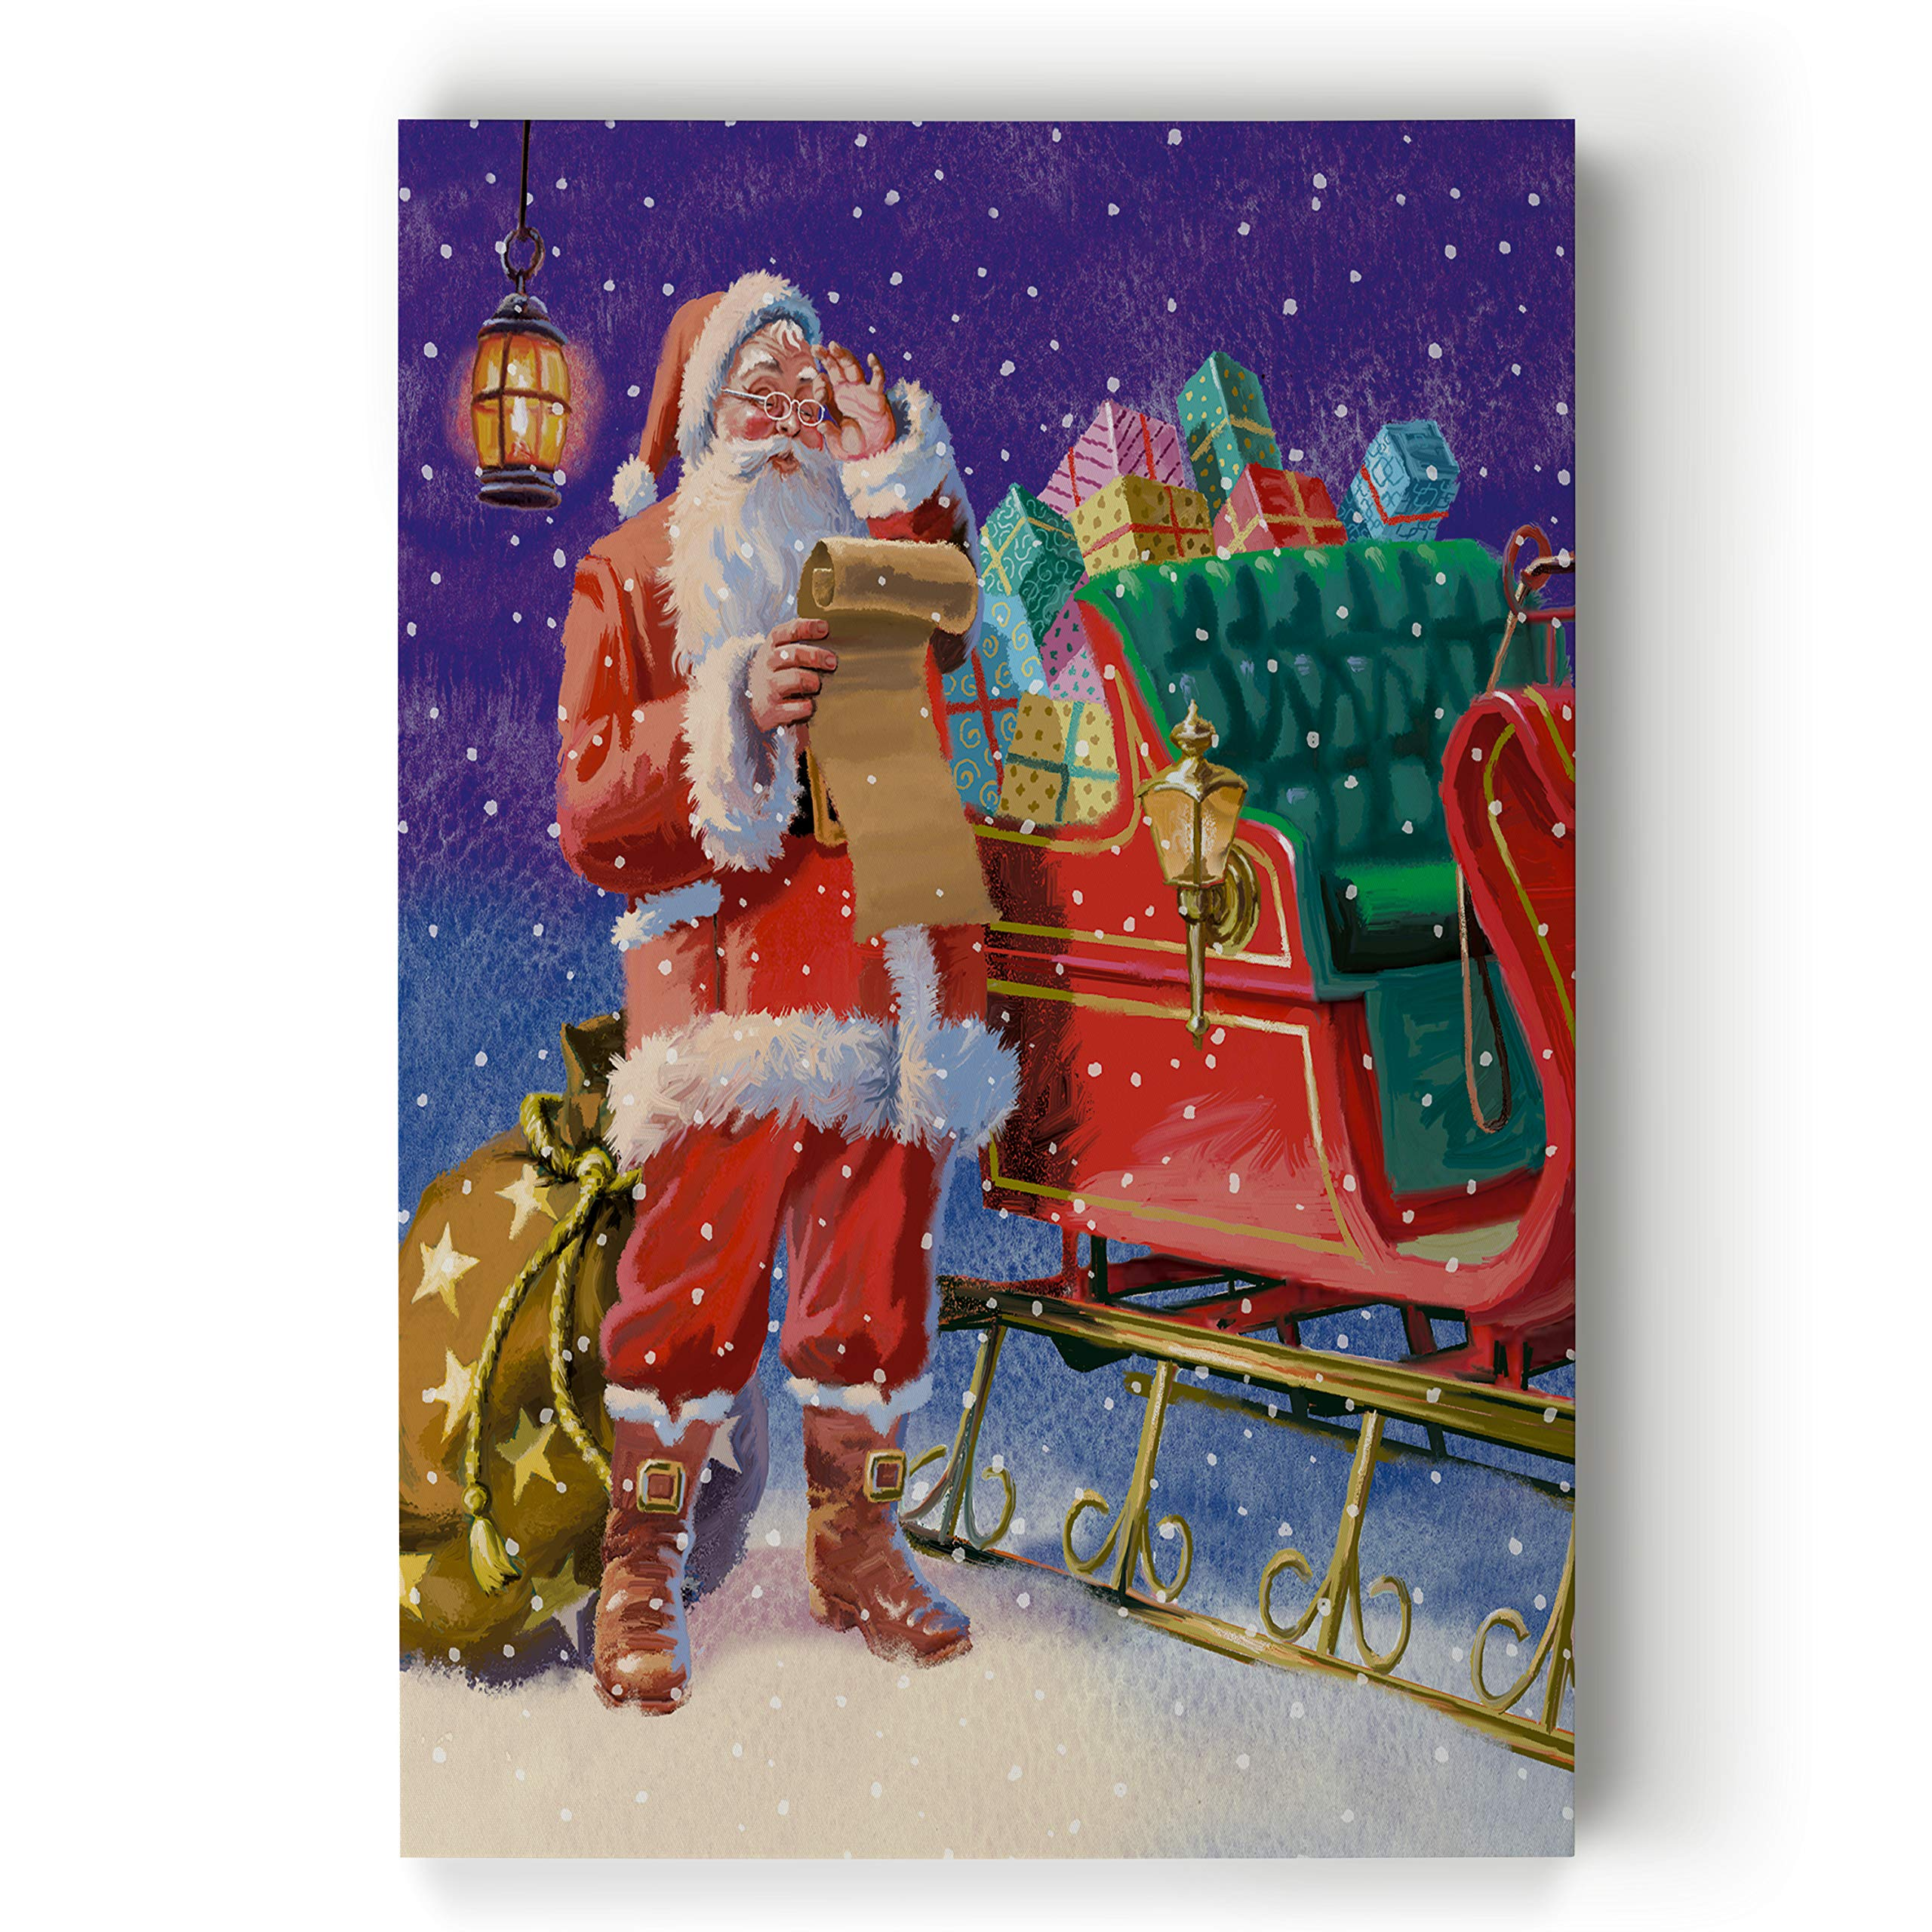 Renditions Gallery Last Minute Preparations by Victor McLindon Gallery Wrapped Canvas Christmas Wall Art, 36x48 by Renditions Gallery